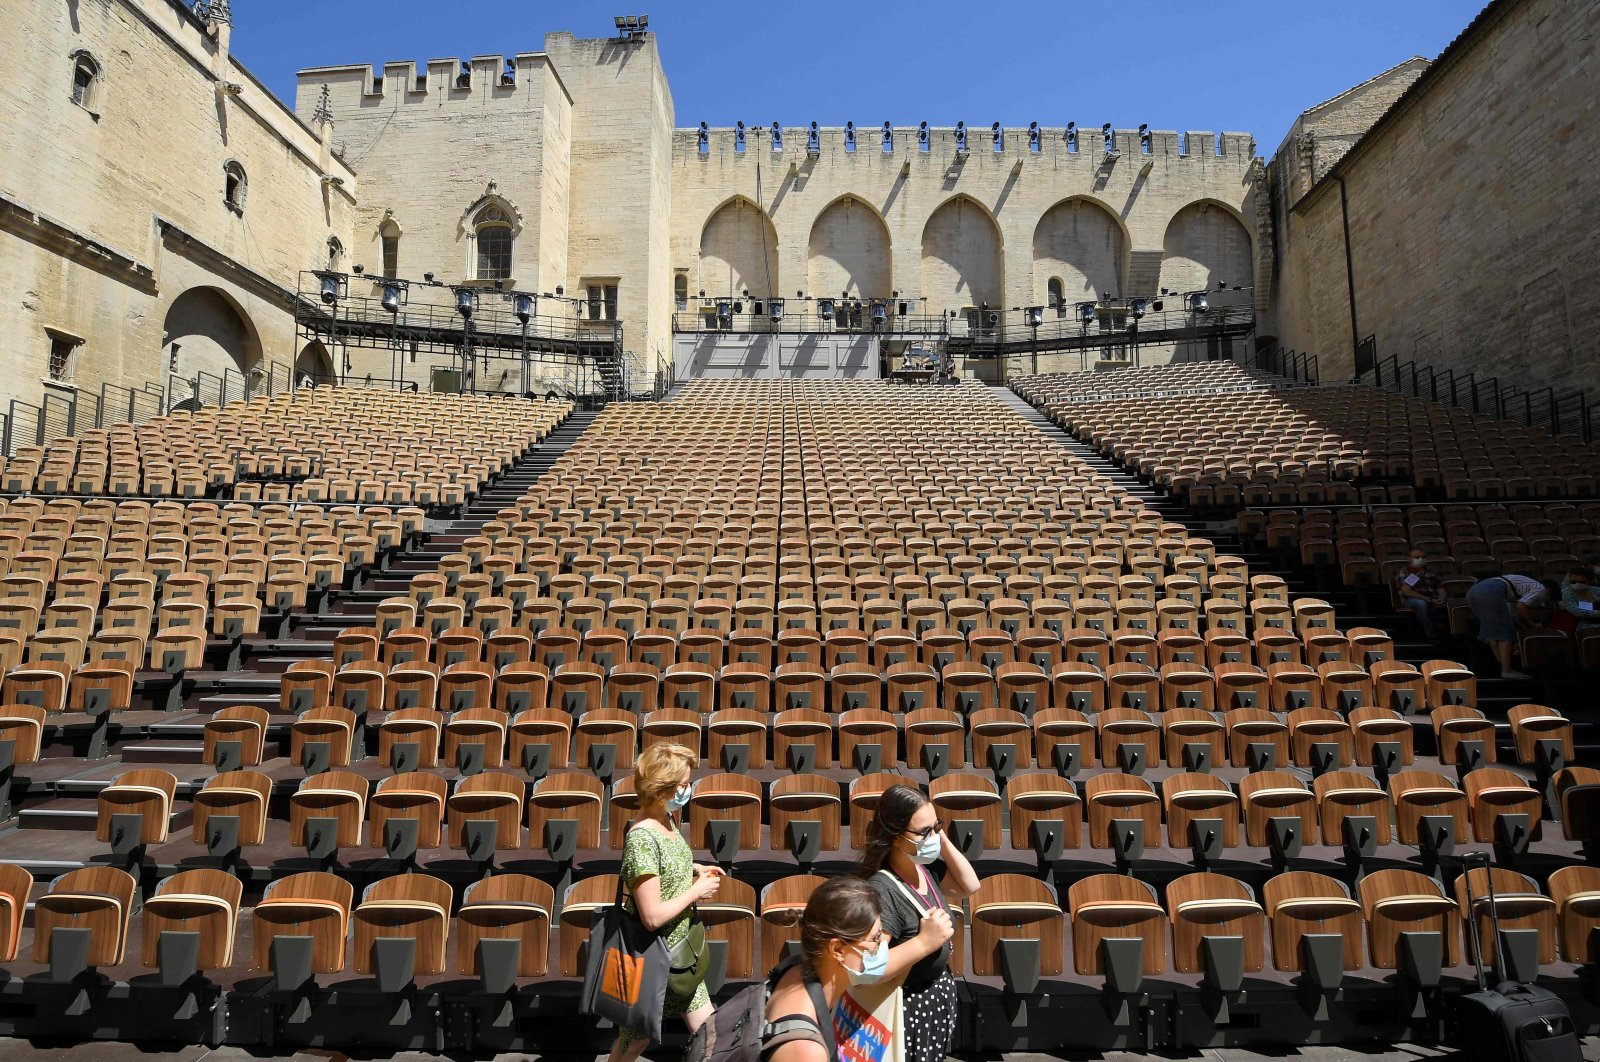 """People stand in the """"Cour d'honneur"""" of the Popes' Palace (Palais des papes) stage on the first day of this year's edition of the Avignon theatre festival in Avignon, France, July 5, 2021. (AFP Photo)"""